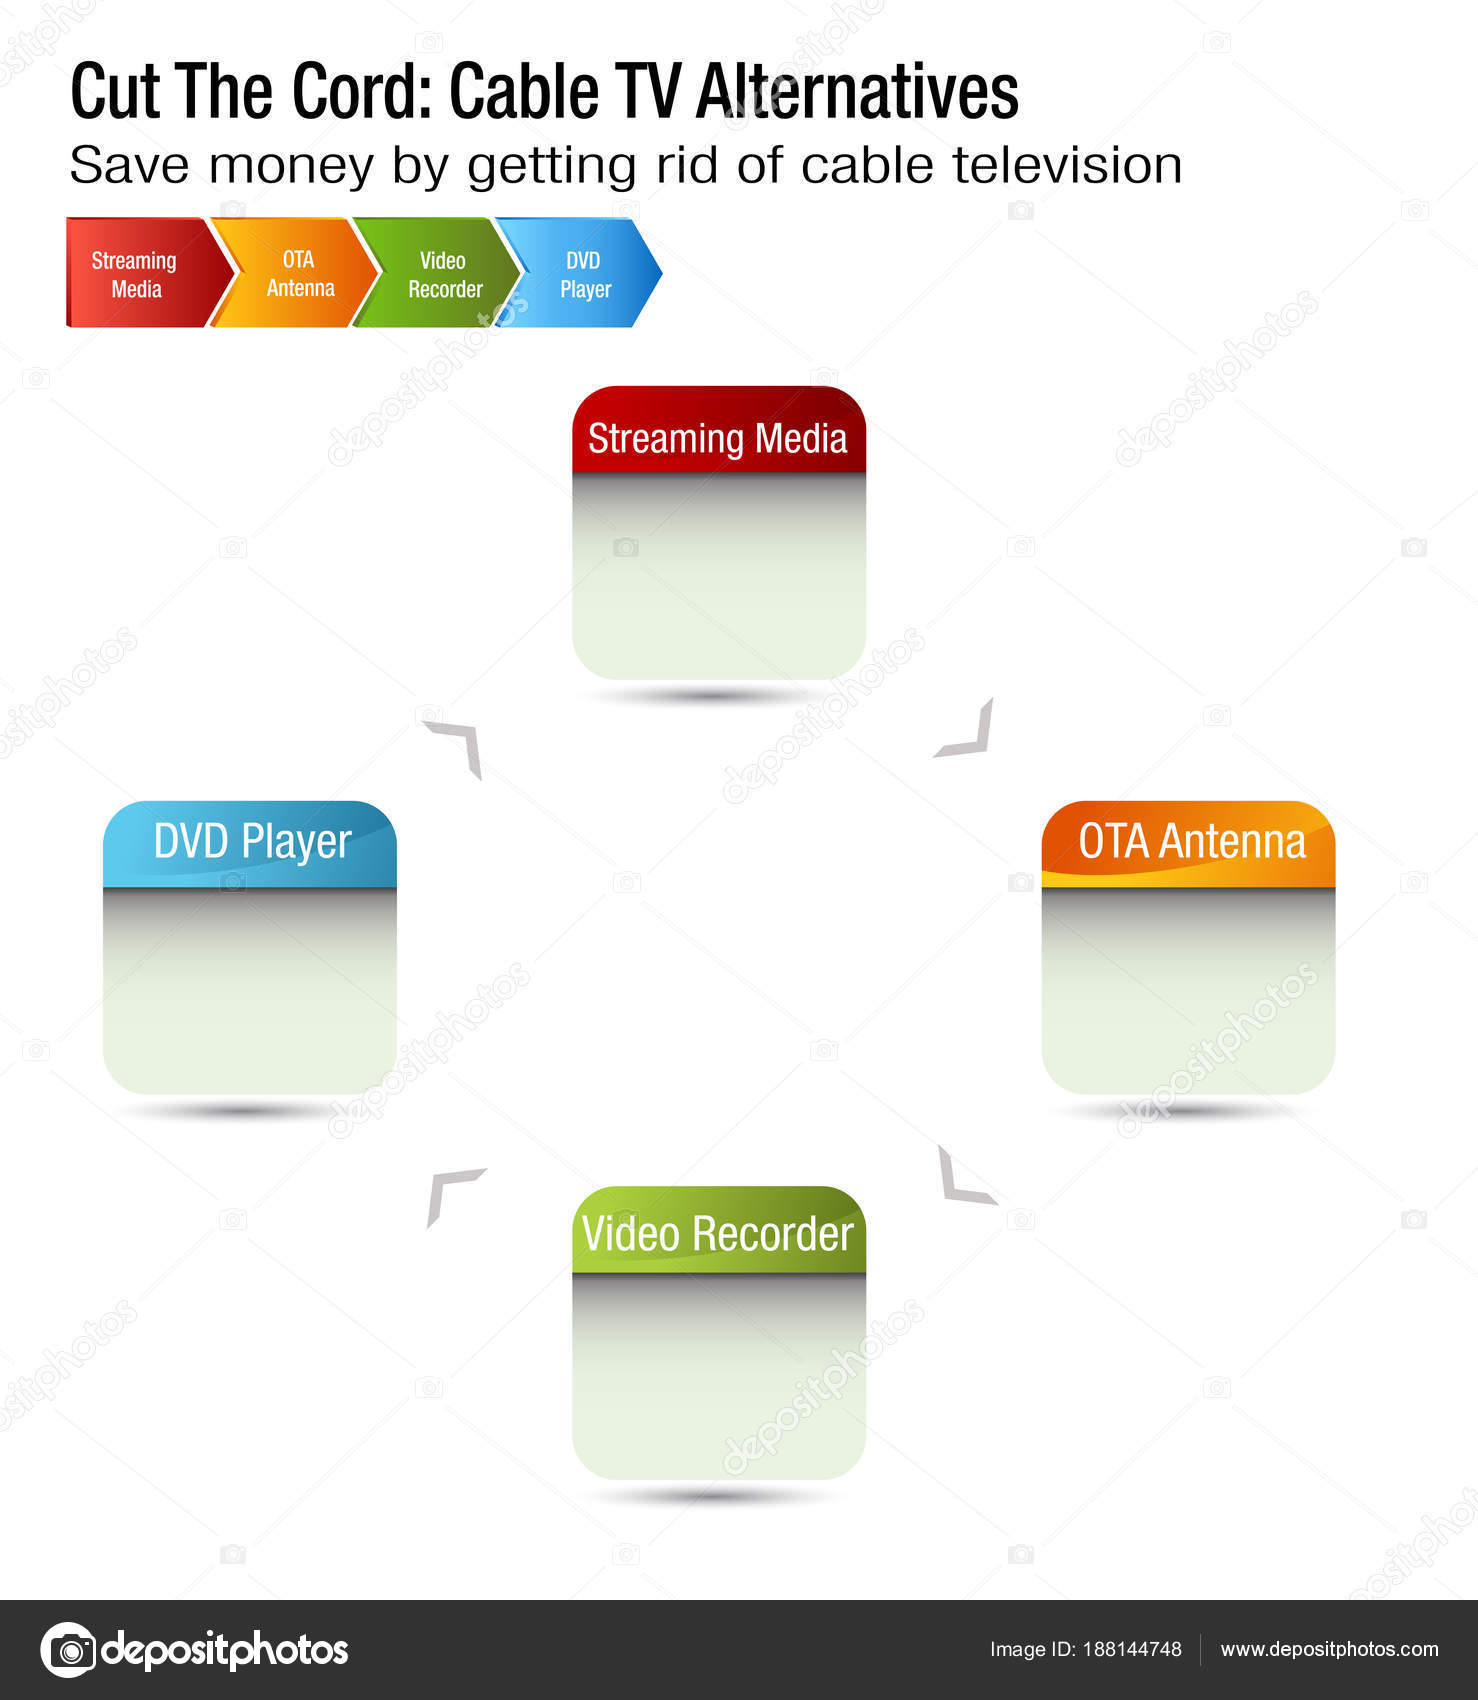 Cut The Cord Cable Tv Alternatives Chart Stock Vector Diagram An Image Of A By Cteconsulting